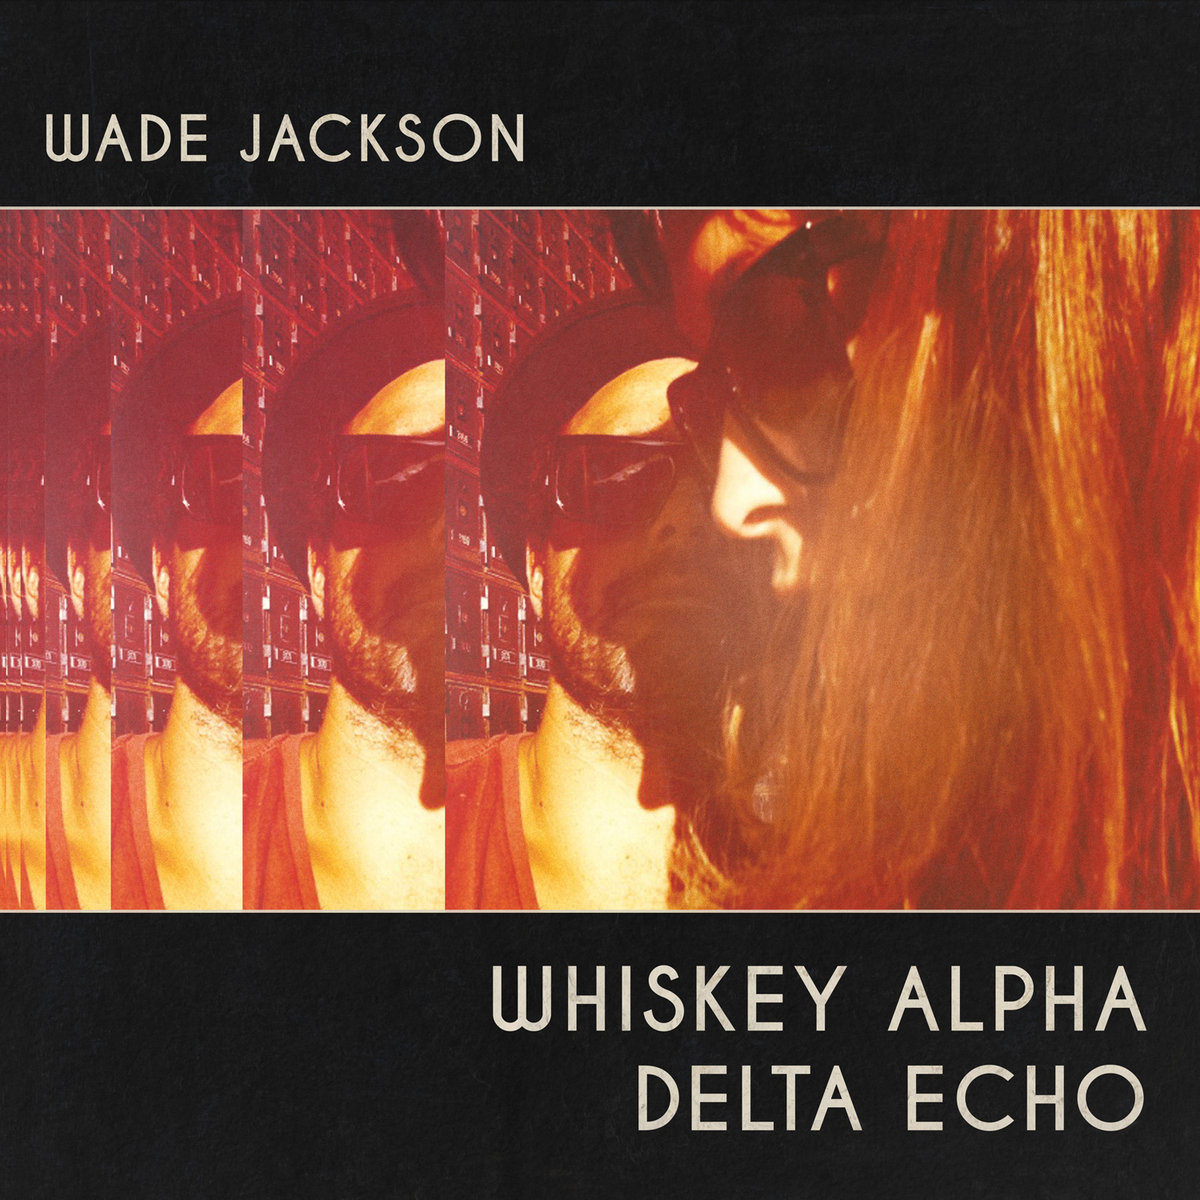 - Wade JacksonWhisky Alpha Delta Echo (Album - 2015)Producer, engineer, mixingChoice cut - Coming Back